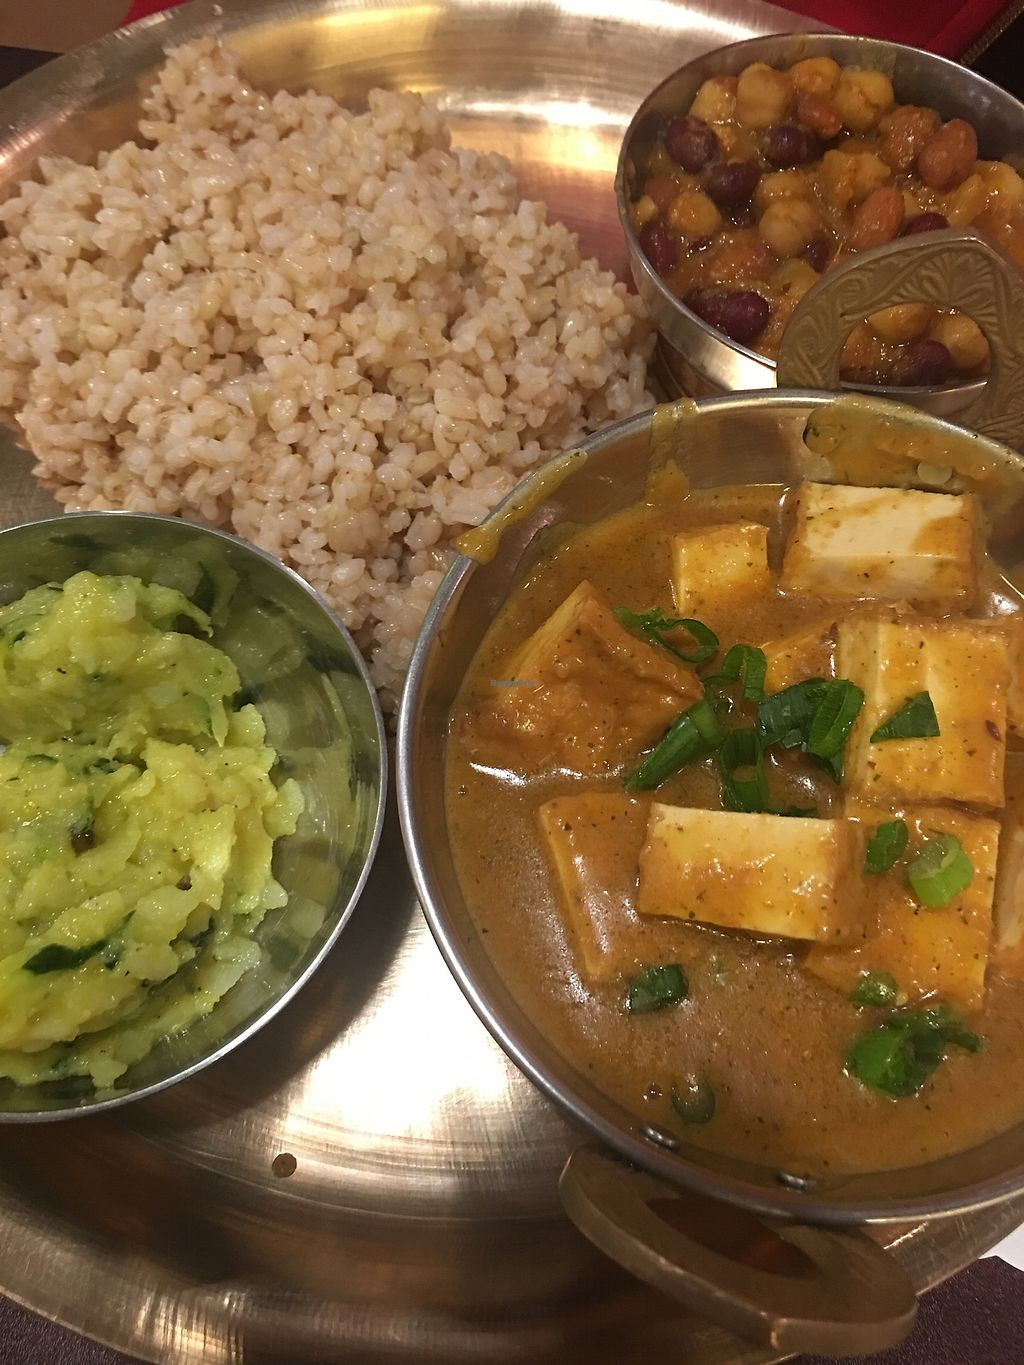 """Photo of Taste of Nepal  by <a href=""""/members/profile/americanwinter"""">americanwinter</a> <br/>Taste of Nepal - Tofu Saag <br/> April 17, 2018  - <a href='/contact/abuse/image/106840/387085'>Report</a>"""